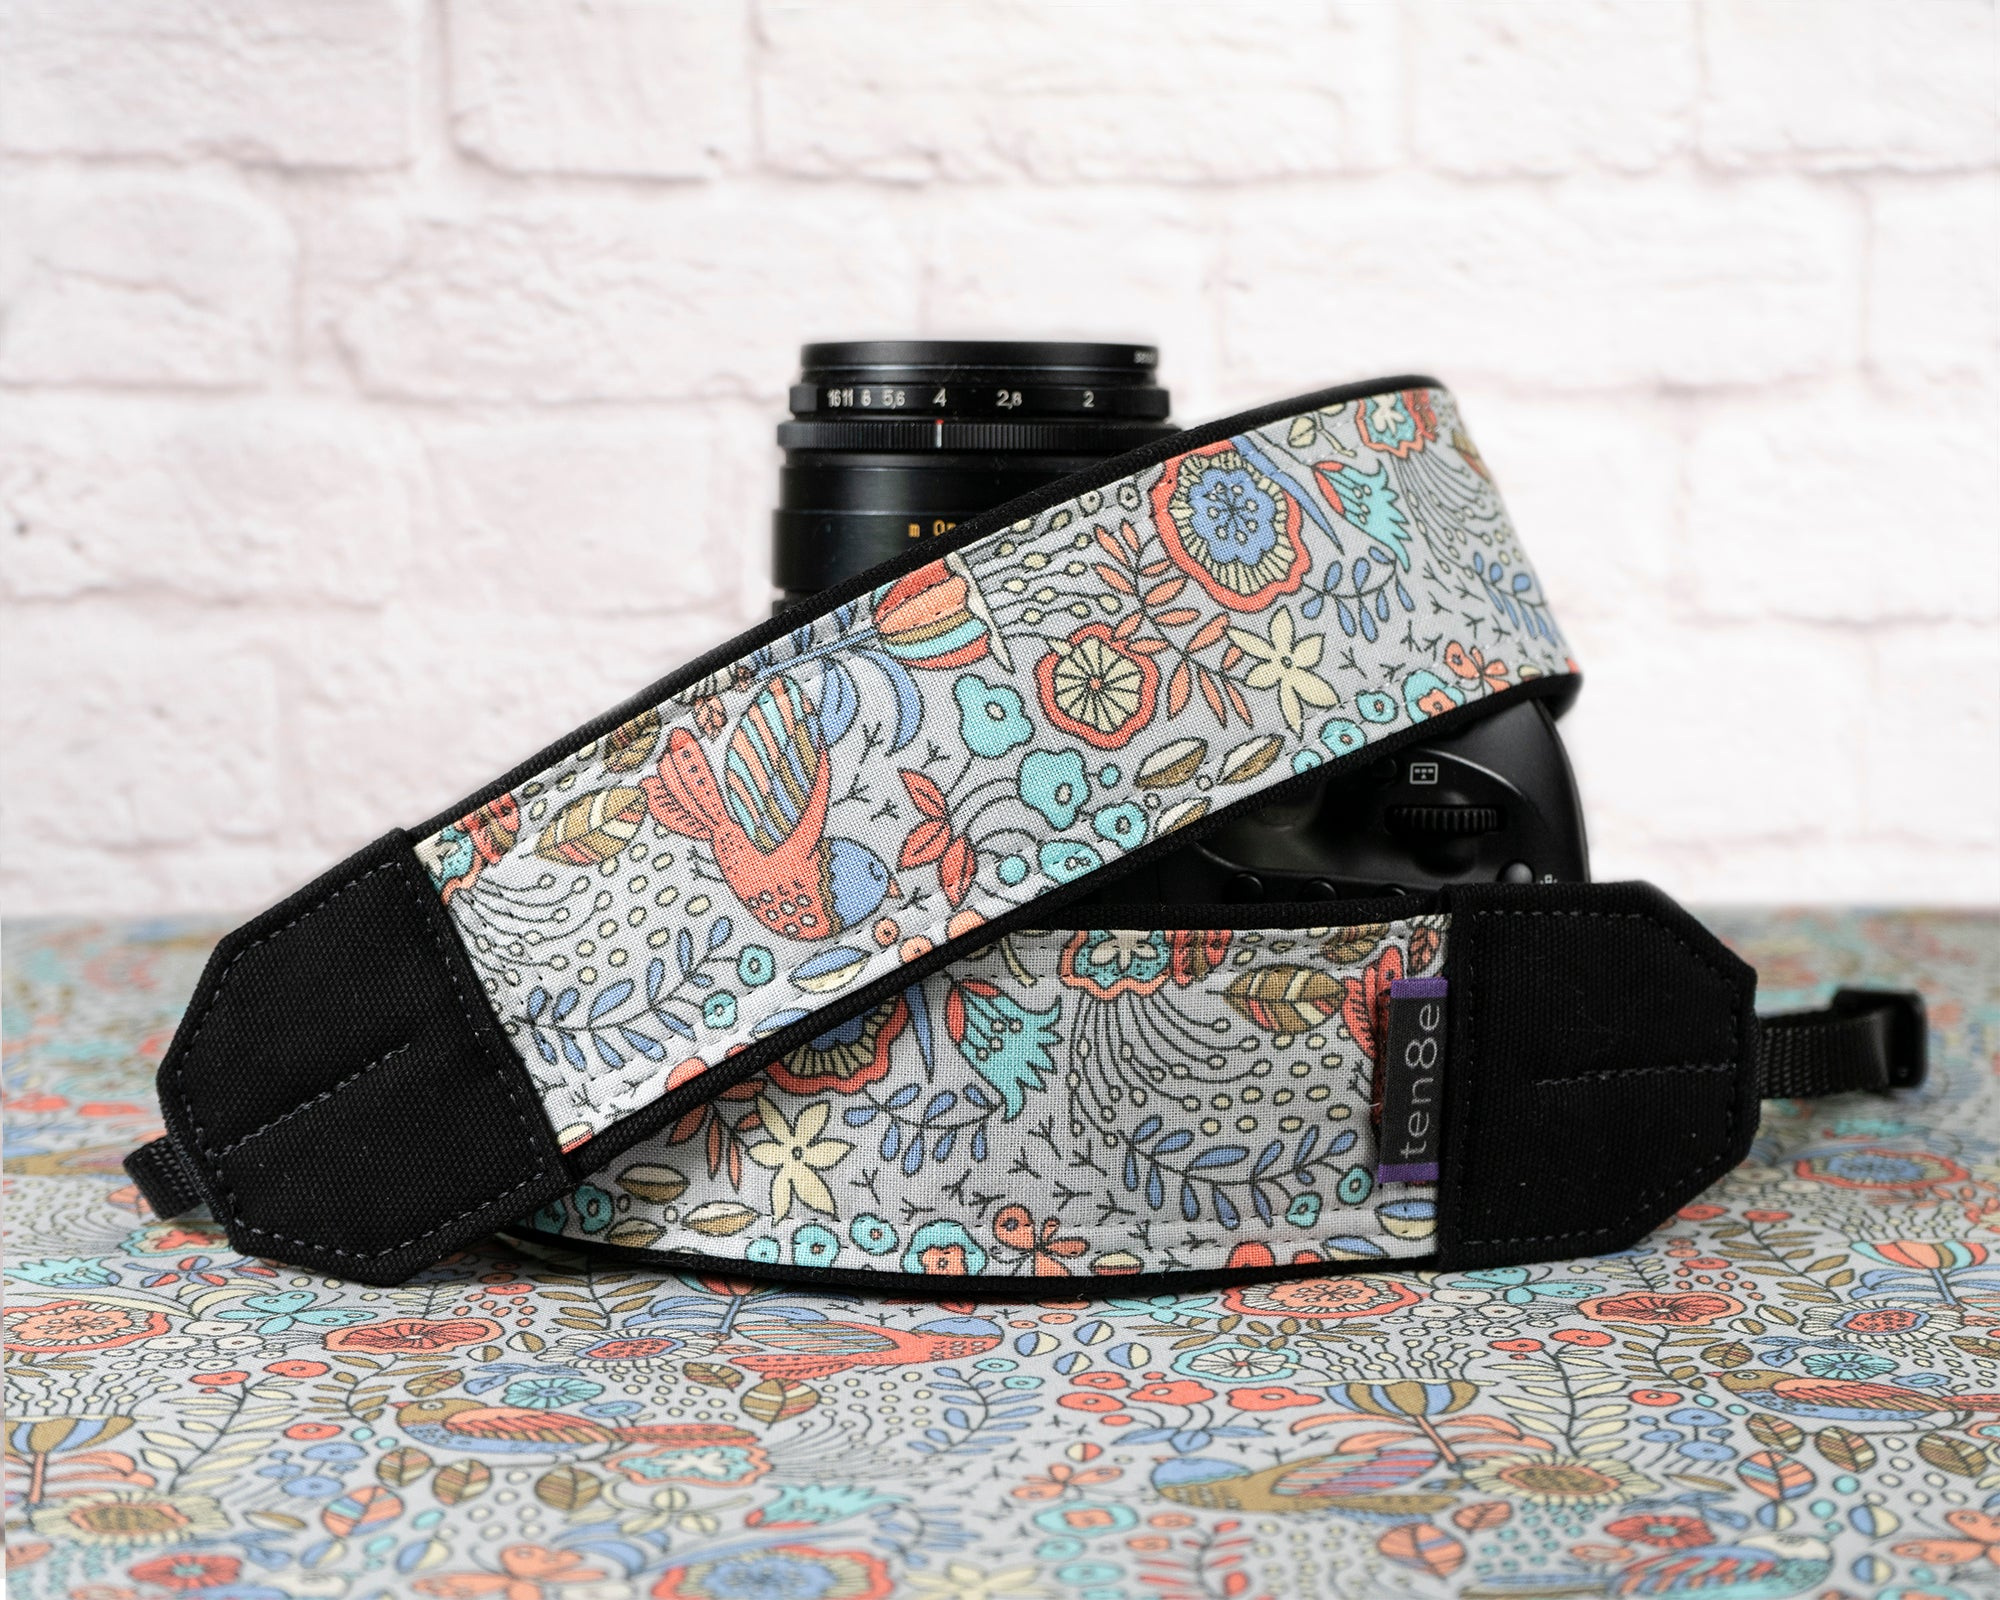 359 Folk Art Birds Camera Strap - ten8e Camera Straps